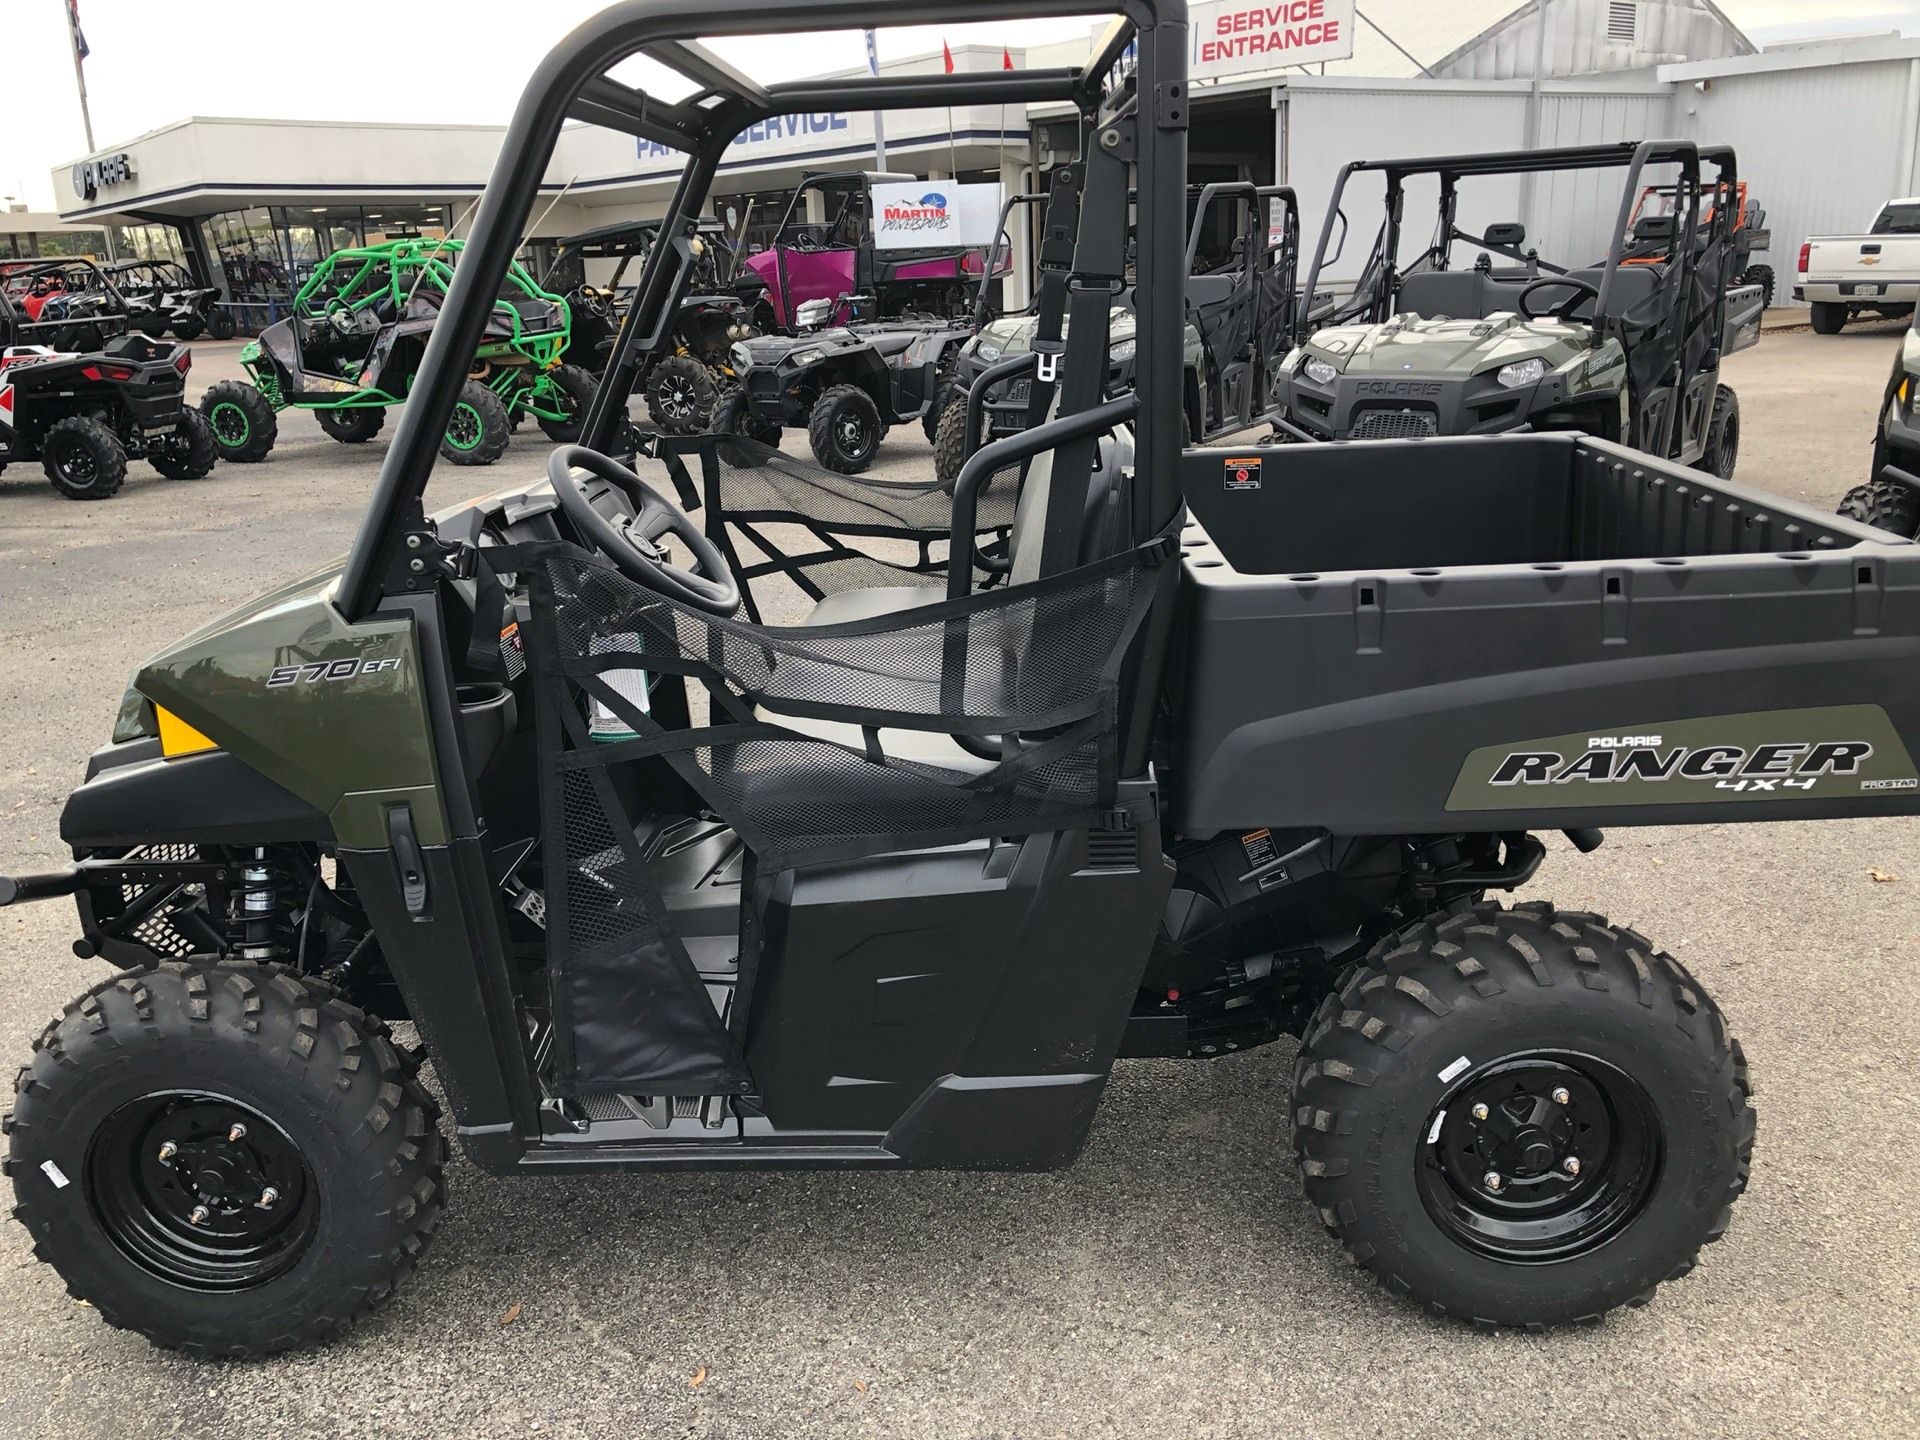 2019 Polaris Ranger 570 for sale 5286